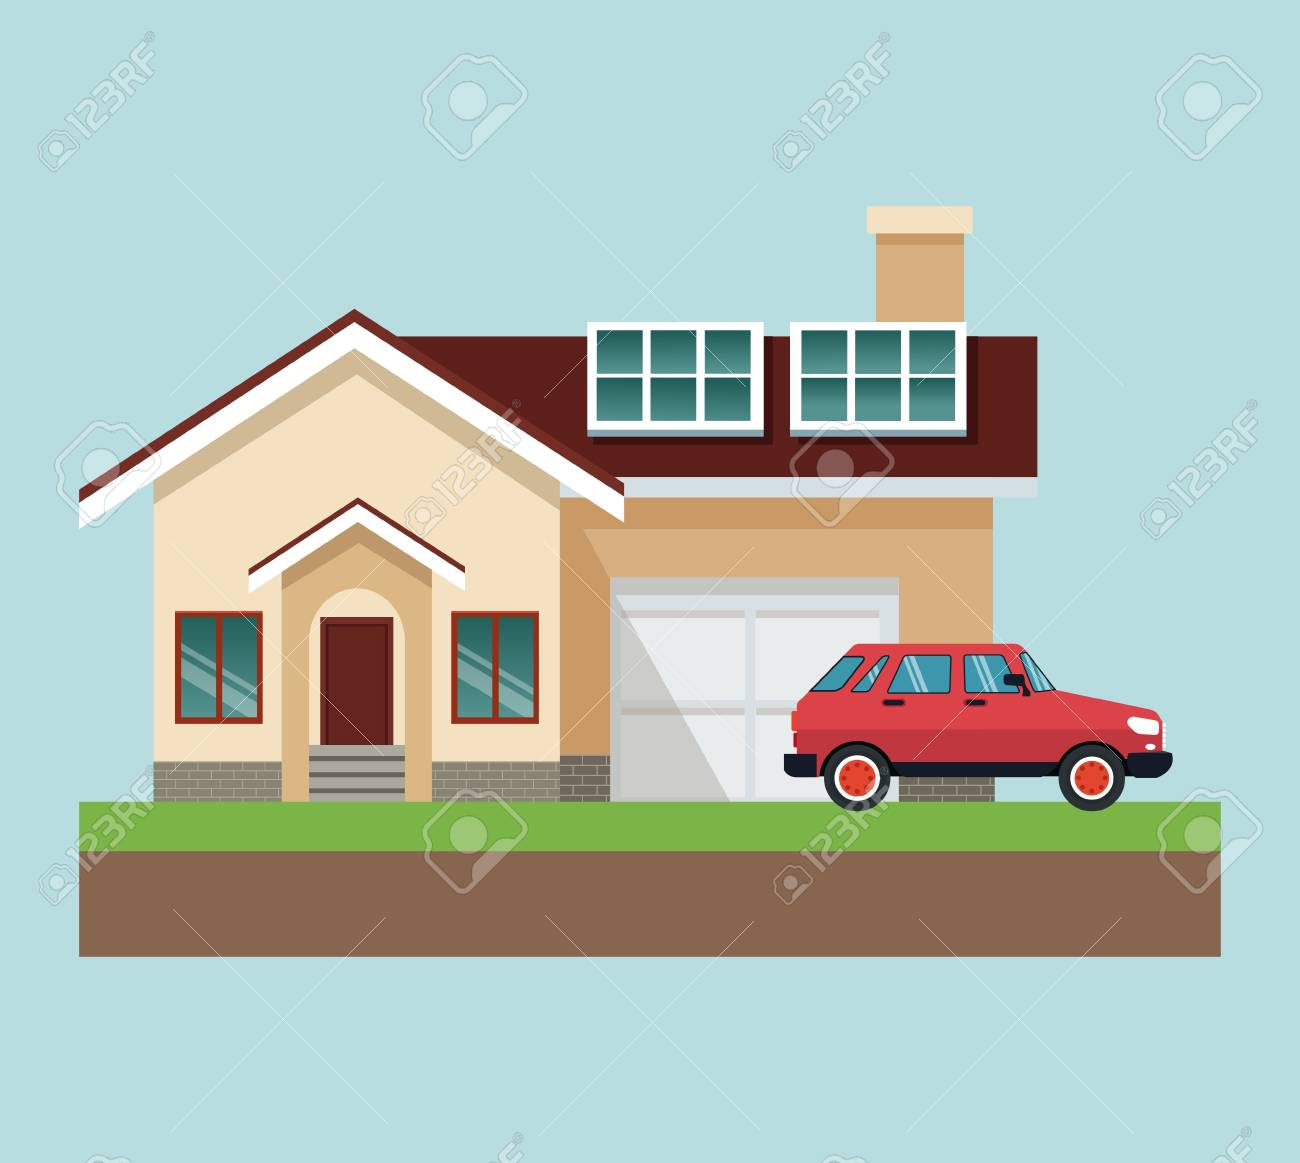 House With Car In Ground Vector Illustration Graphic Design Royalty Free Cliparts Vectors And Stock Illustration Image 102598062